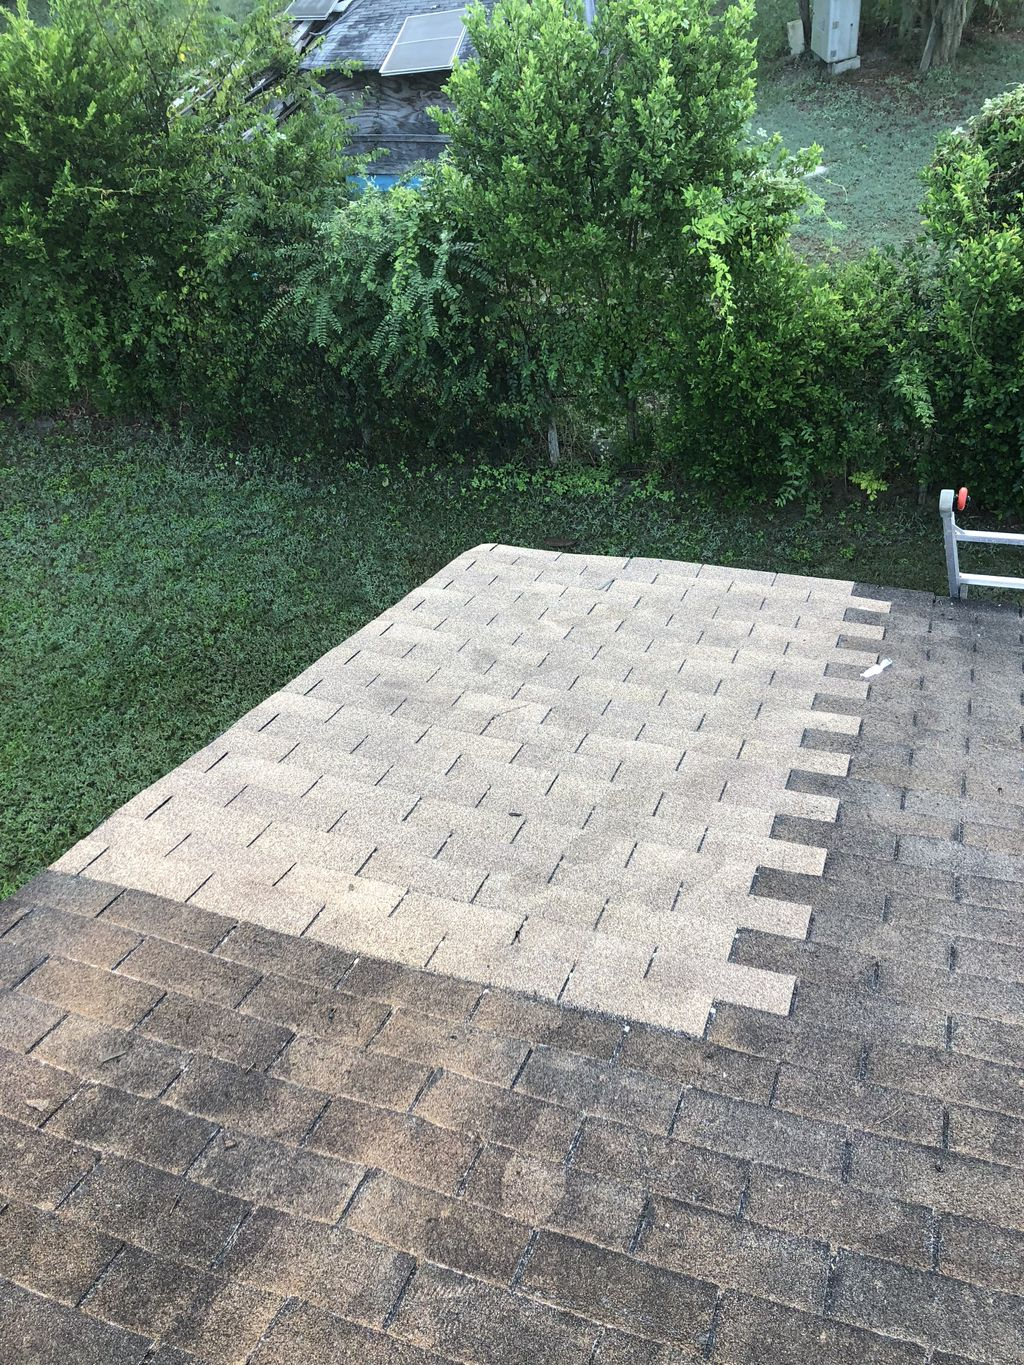 Wood and shingle replacement